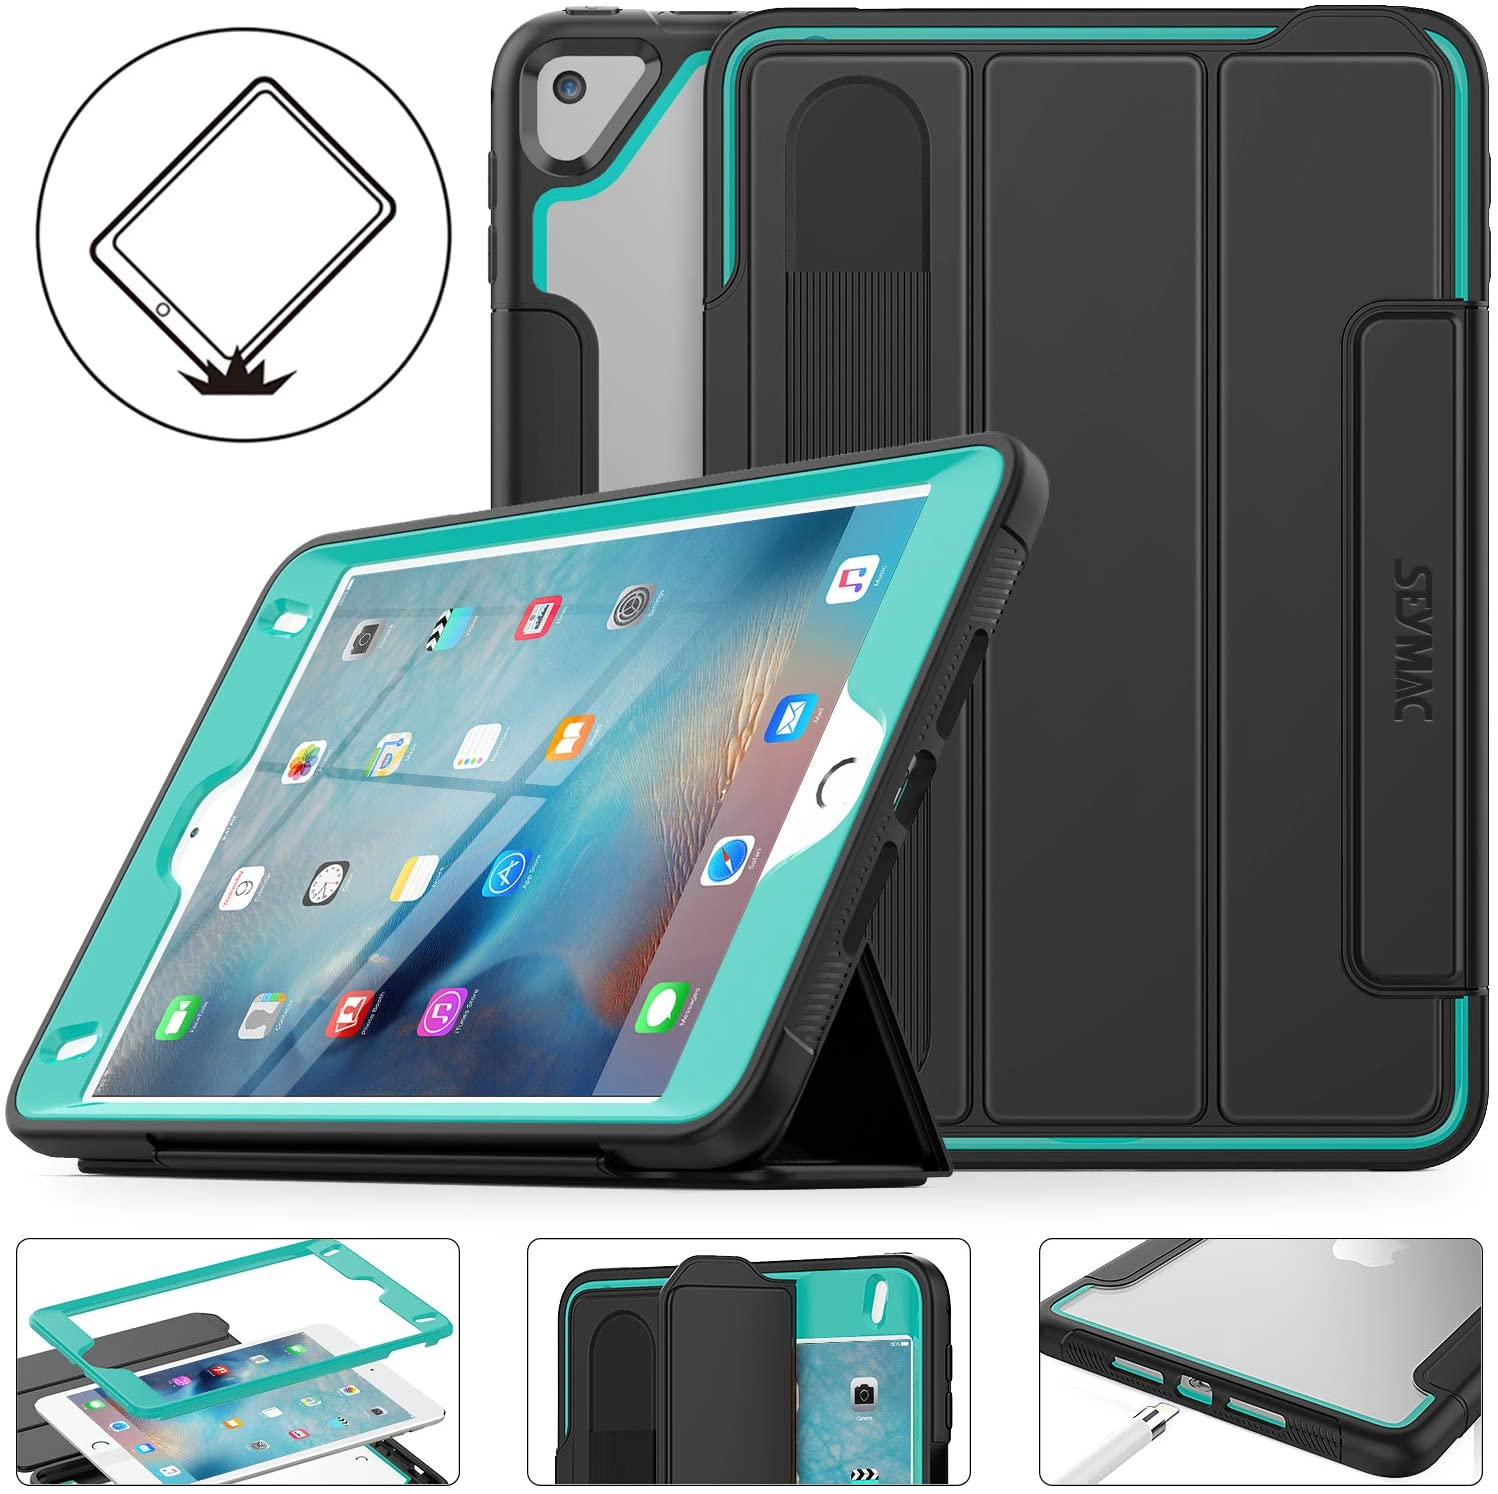 SEYMAC Stock iPad Mini 5/4 7.9 inch Case 2019/2015, Lightweight Drop Poof Smart Cover with [Screen Protector] Stand [Clear Back] [Pencil Holder] Feature for iPad Mini 5th/ 4th Generation (Black/Green)